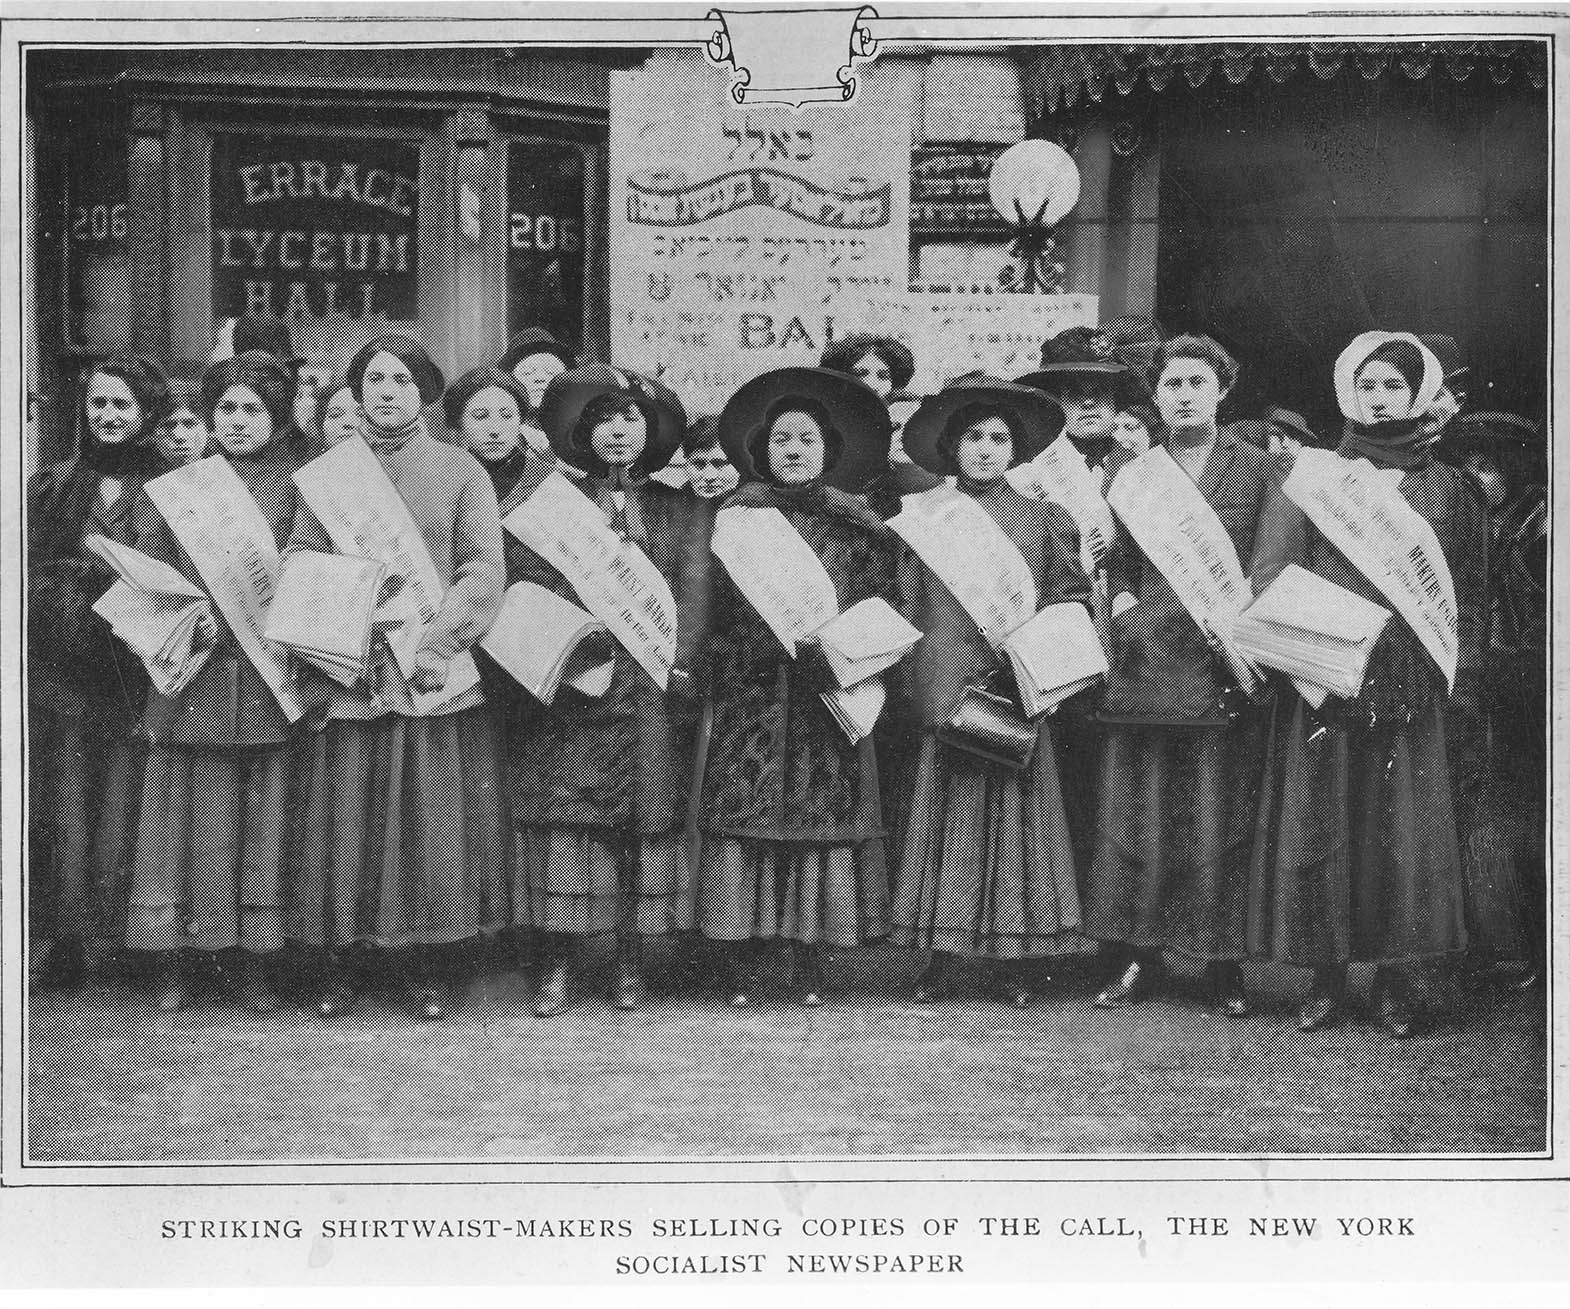 """An image of women shirtwaist strikers holding copies of """"The Call."""" Many of the women wear sashes. They are wearing long coats over long dresses/skirts. Some are wearing hats. A placard with Hebrew writing is next to the building in the background."""